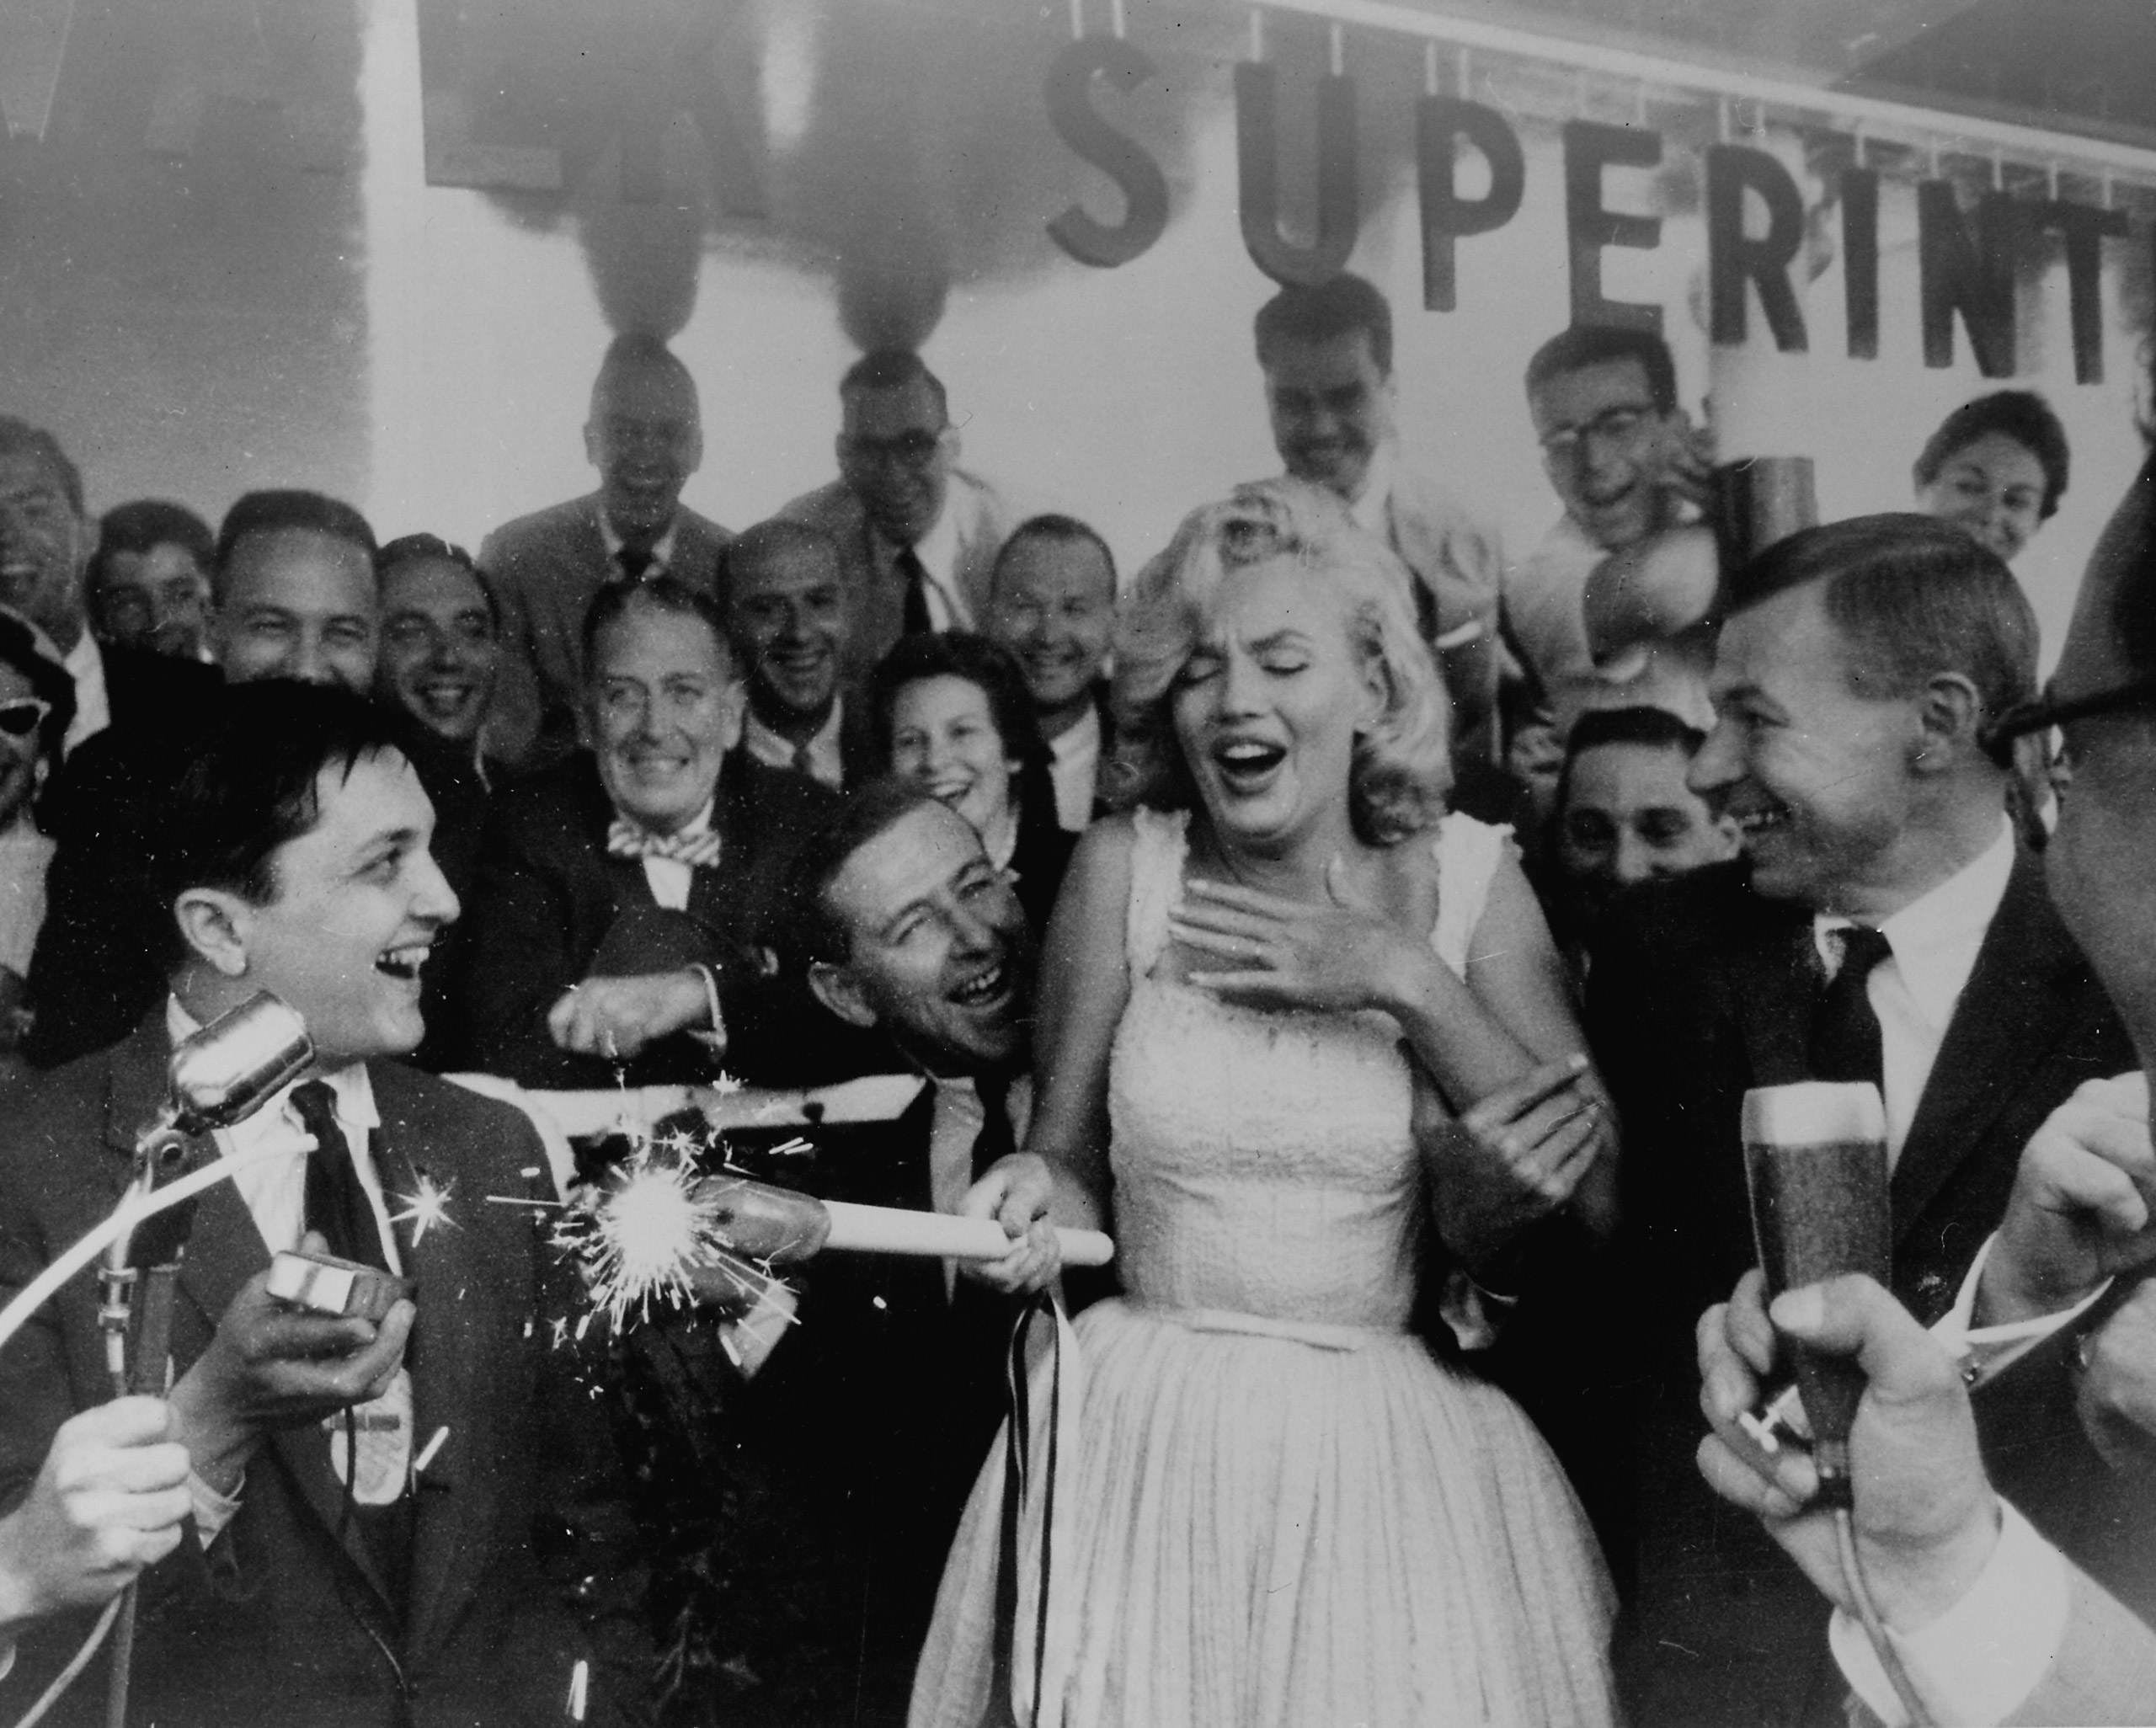 Marilyn Monroe looks startled while holding a flaming sparkler in the Rockefeller Center Sidewalk Superintendents Club during a ceremony for the soon-to-be built Time & Life Building, 1957.